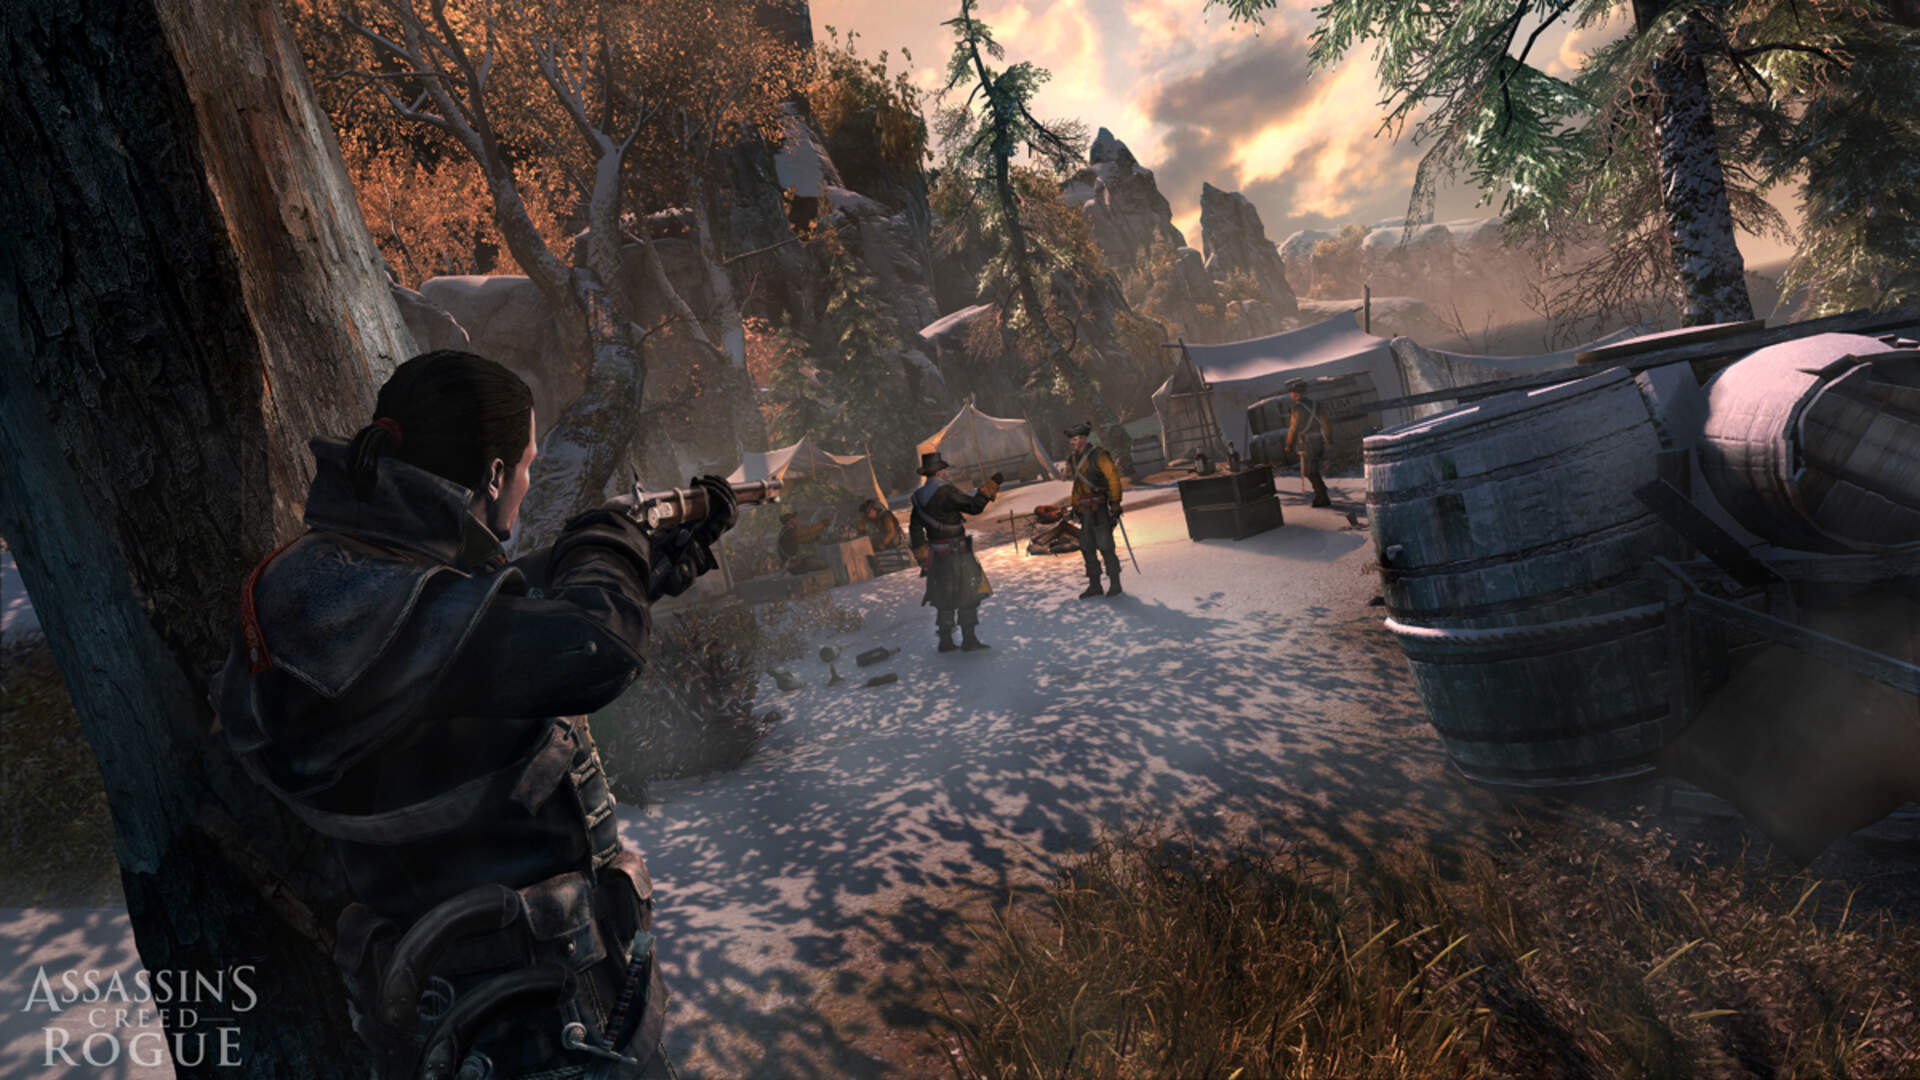 Assassin's Creed Rogue: Throat Slitting and Naval Gazing